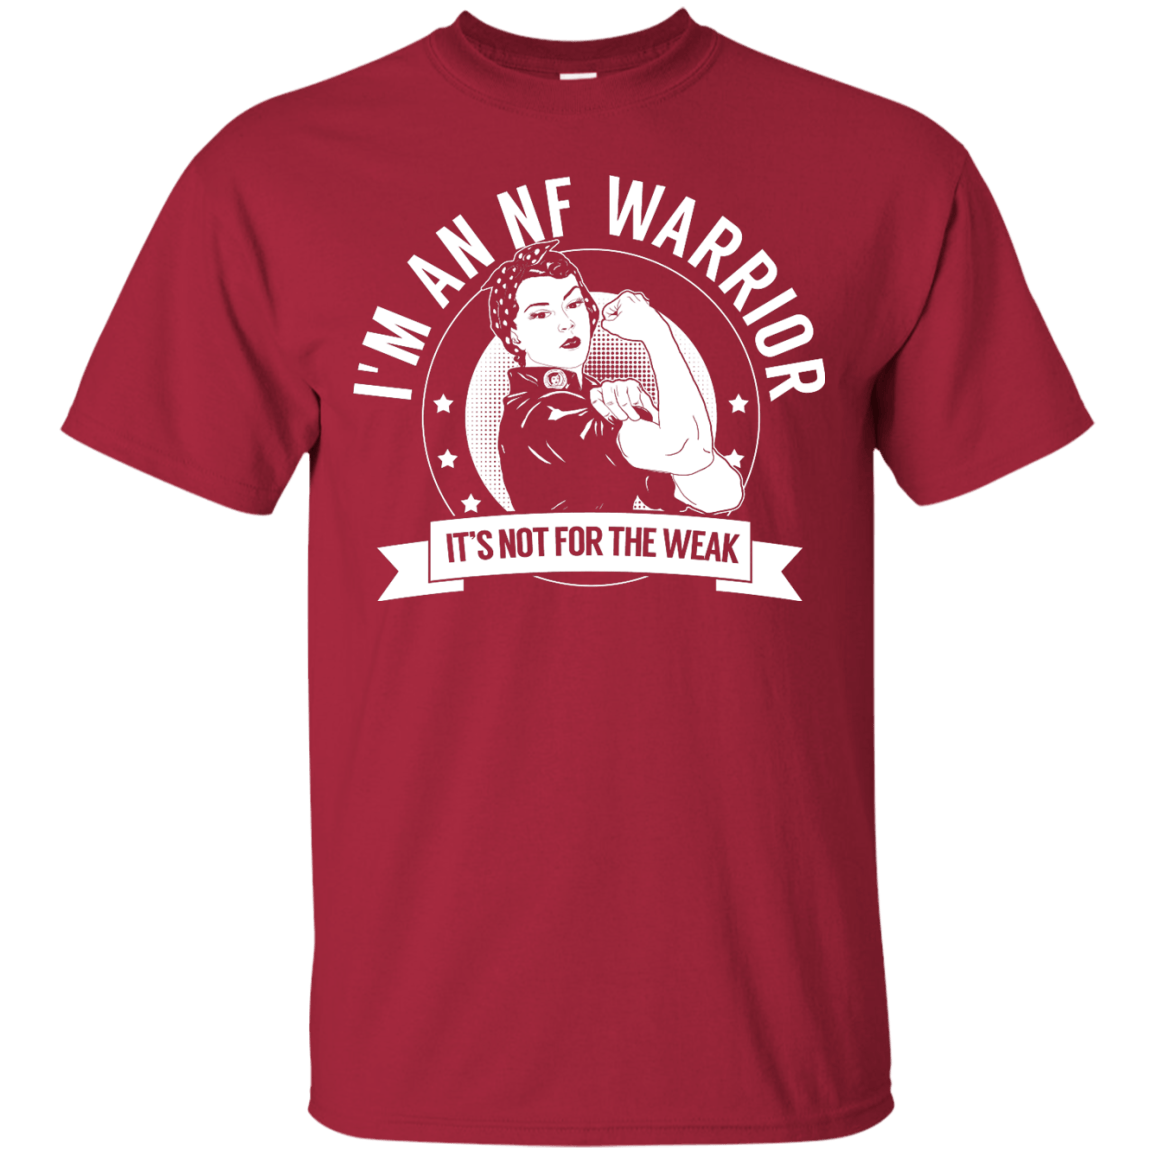 T-Shirts - Neurofibromatosis - NF Warrior Not For The Weak Unisex Shirt